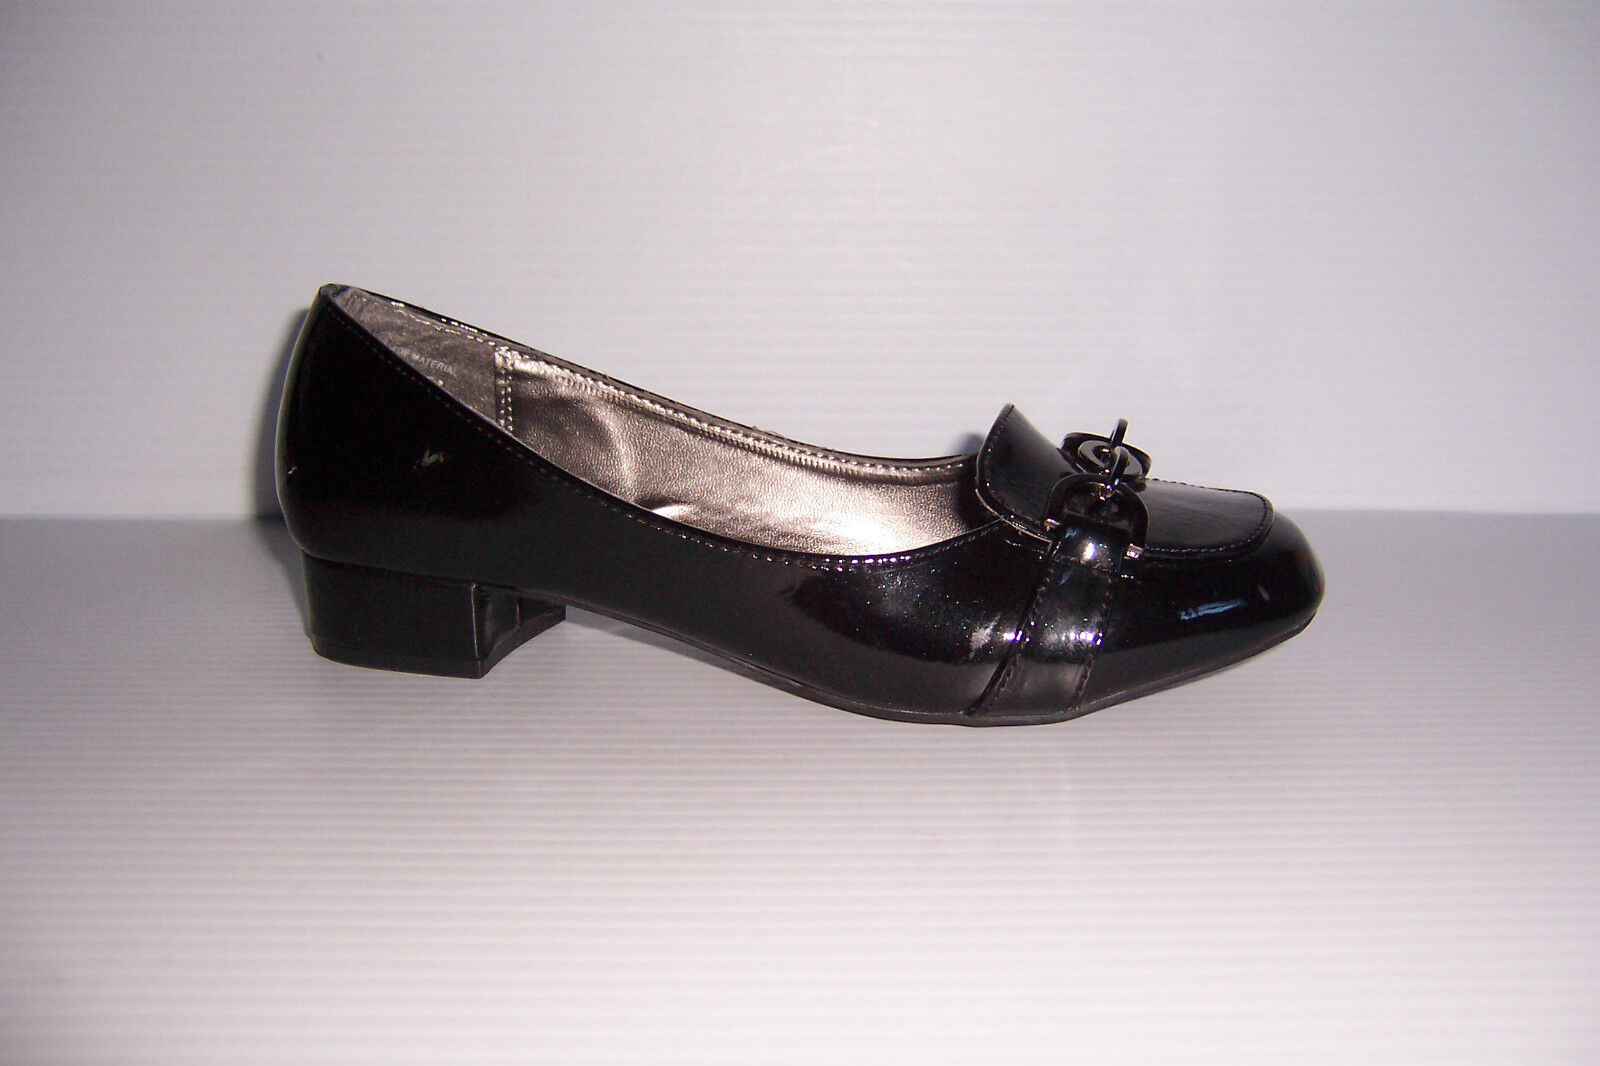 ESO NEW YORK PHILLY BLACK WOMEN'S CLASSIC HEELS SHOES SIZE 6.5 M NEW IN BOX